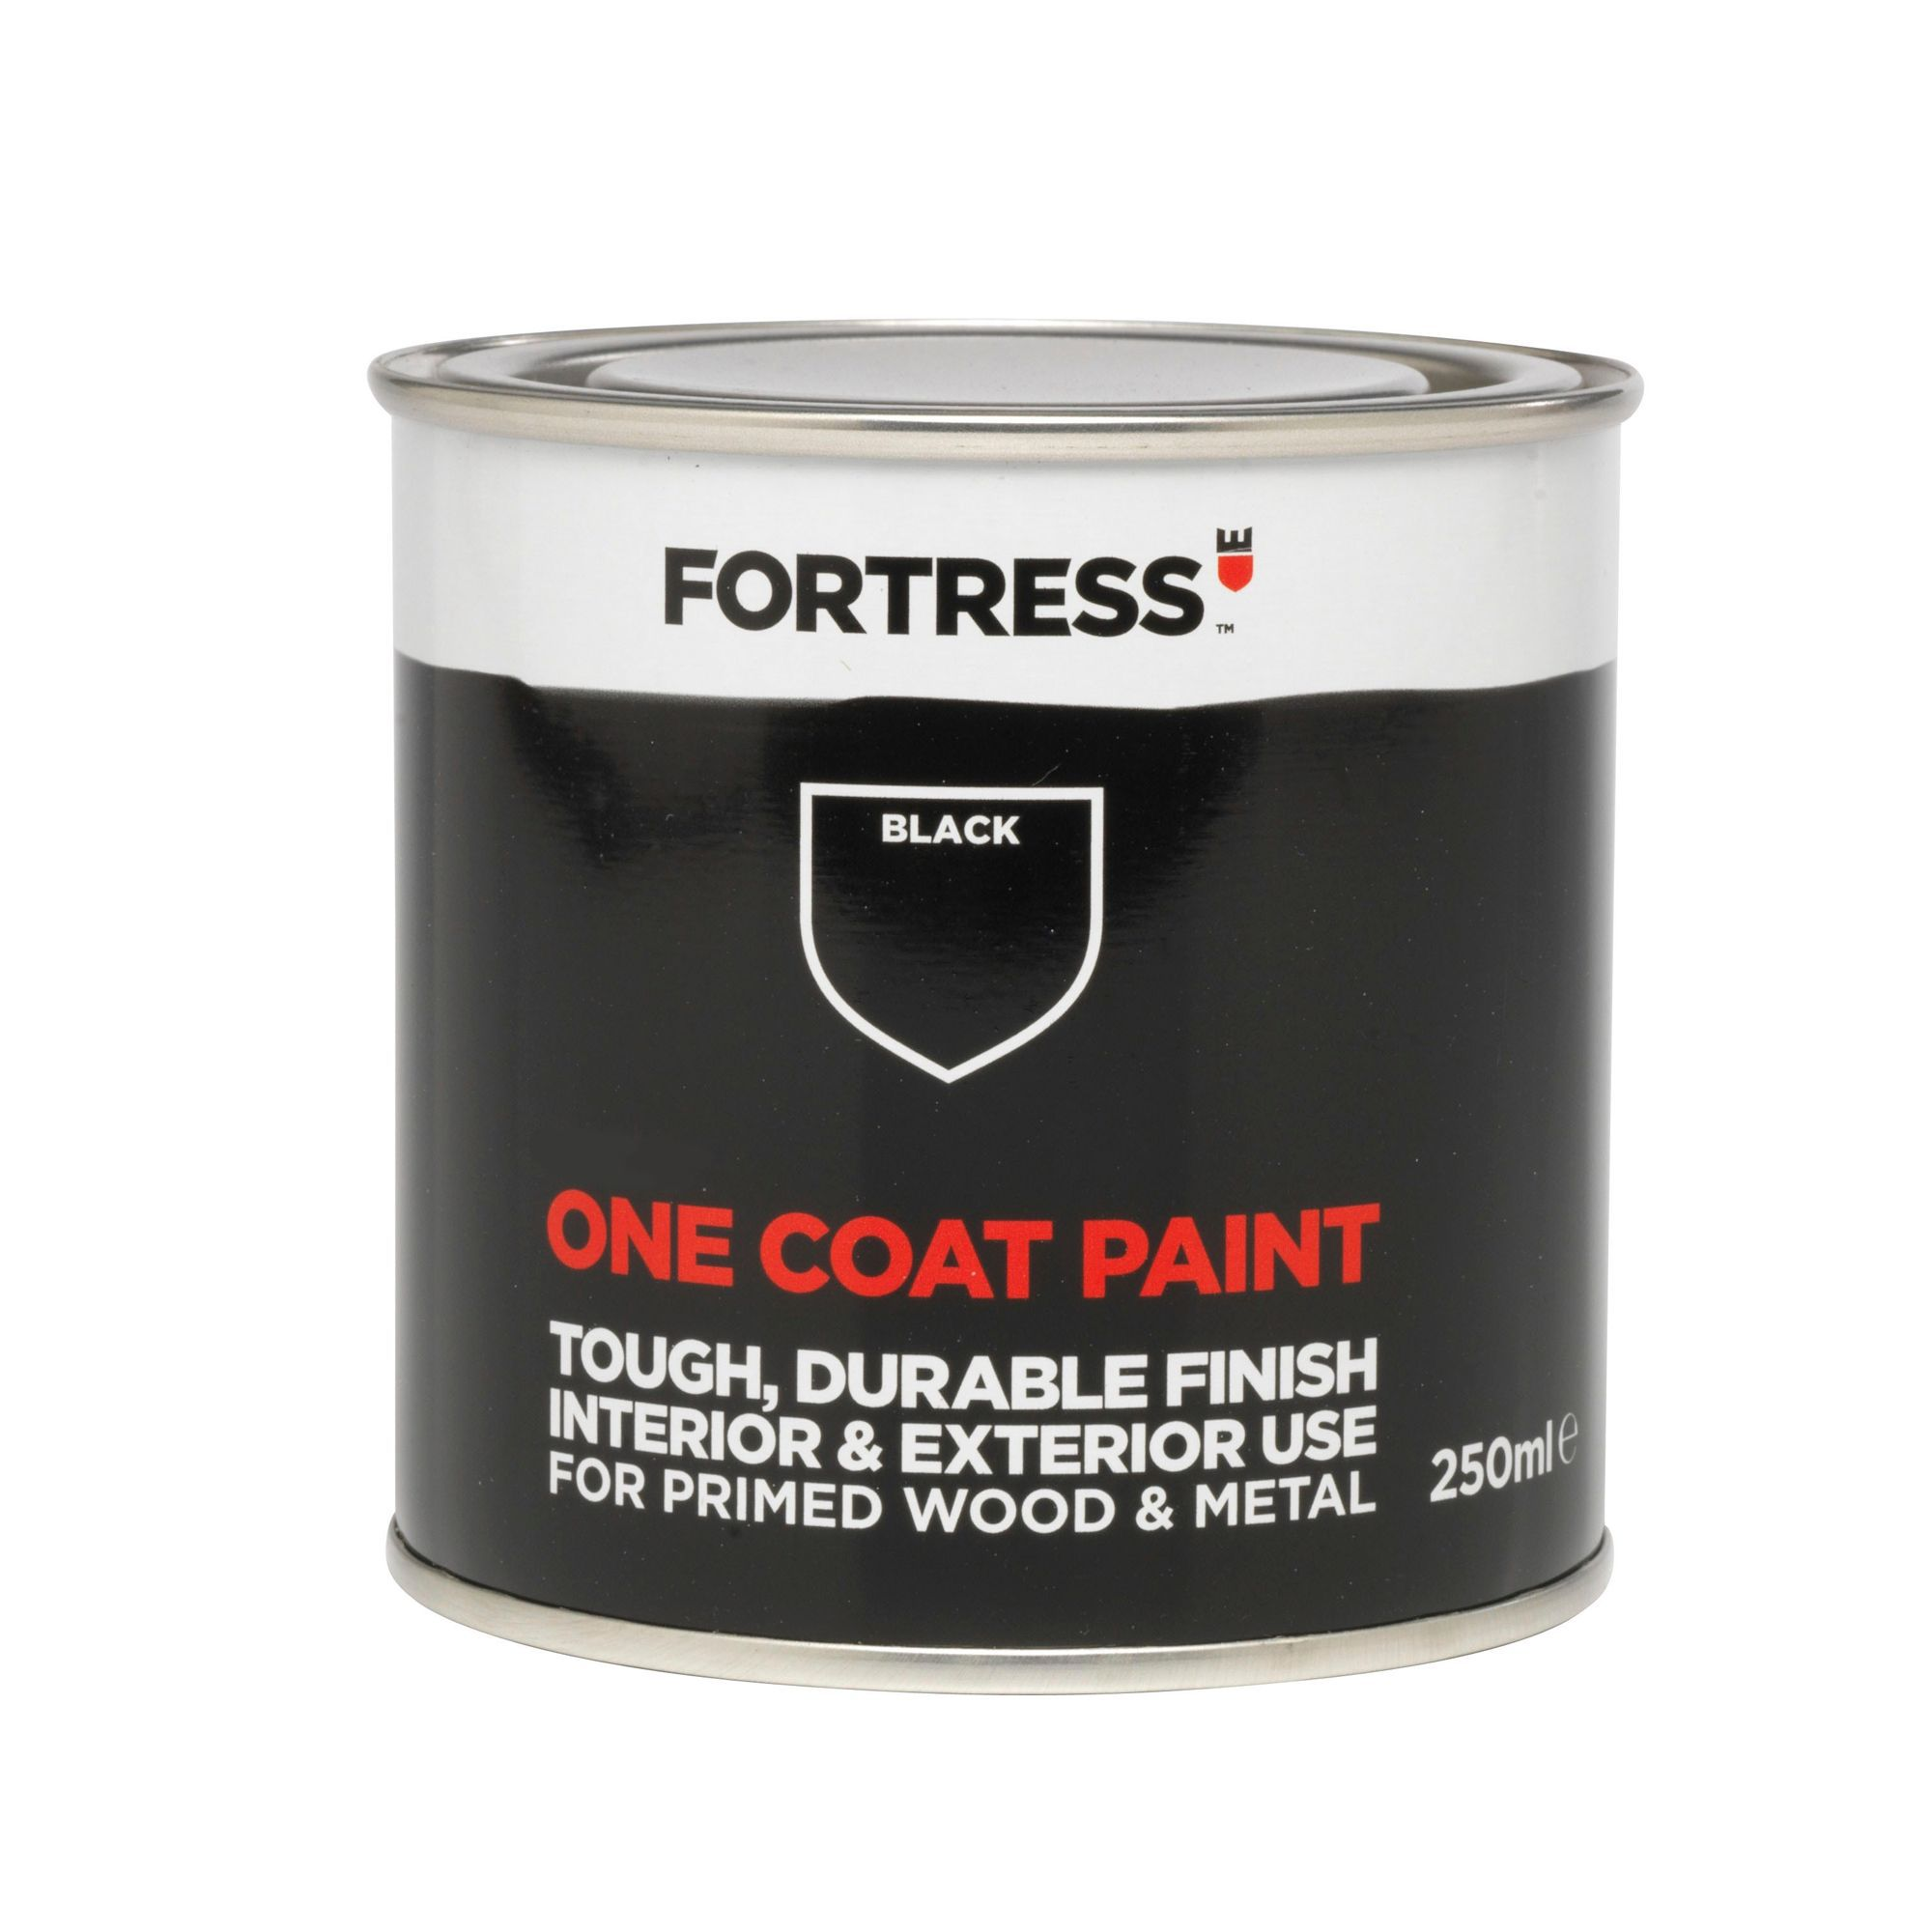 Fortress Matt One Coat Black Paint Ml